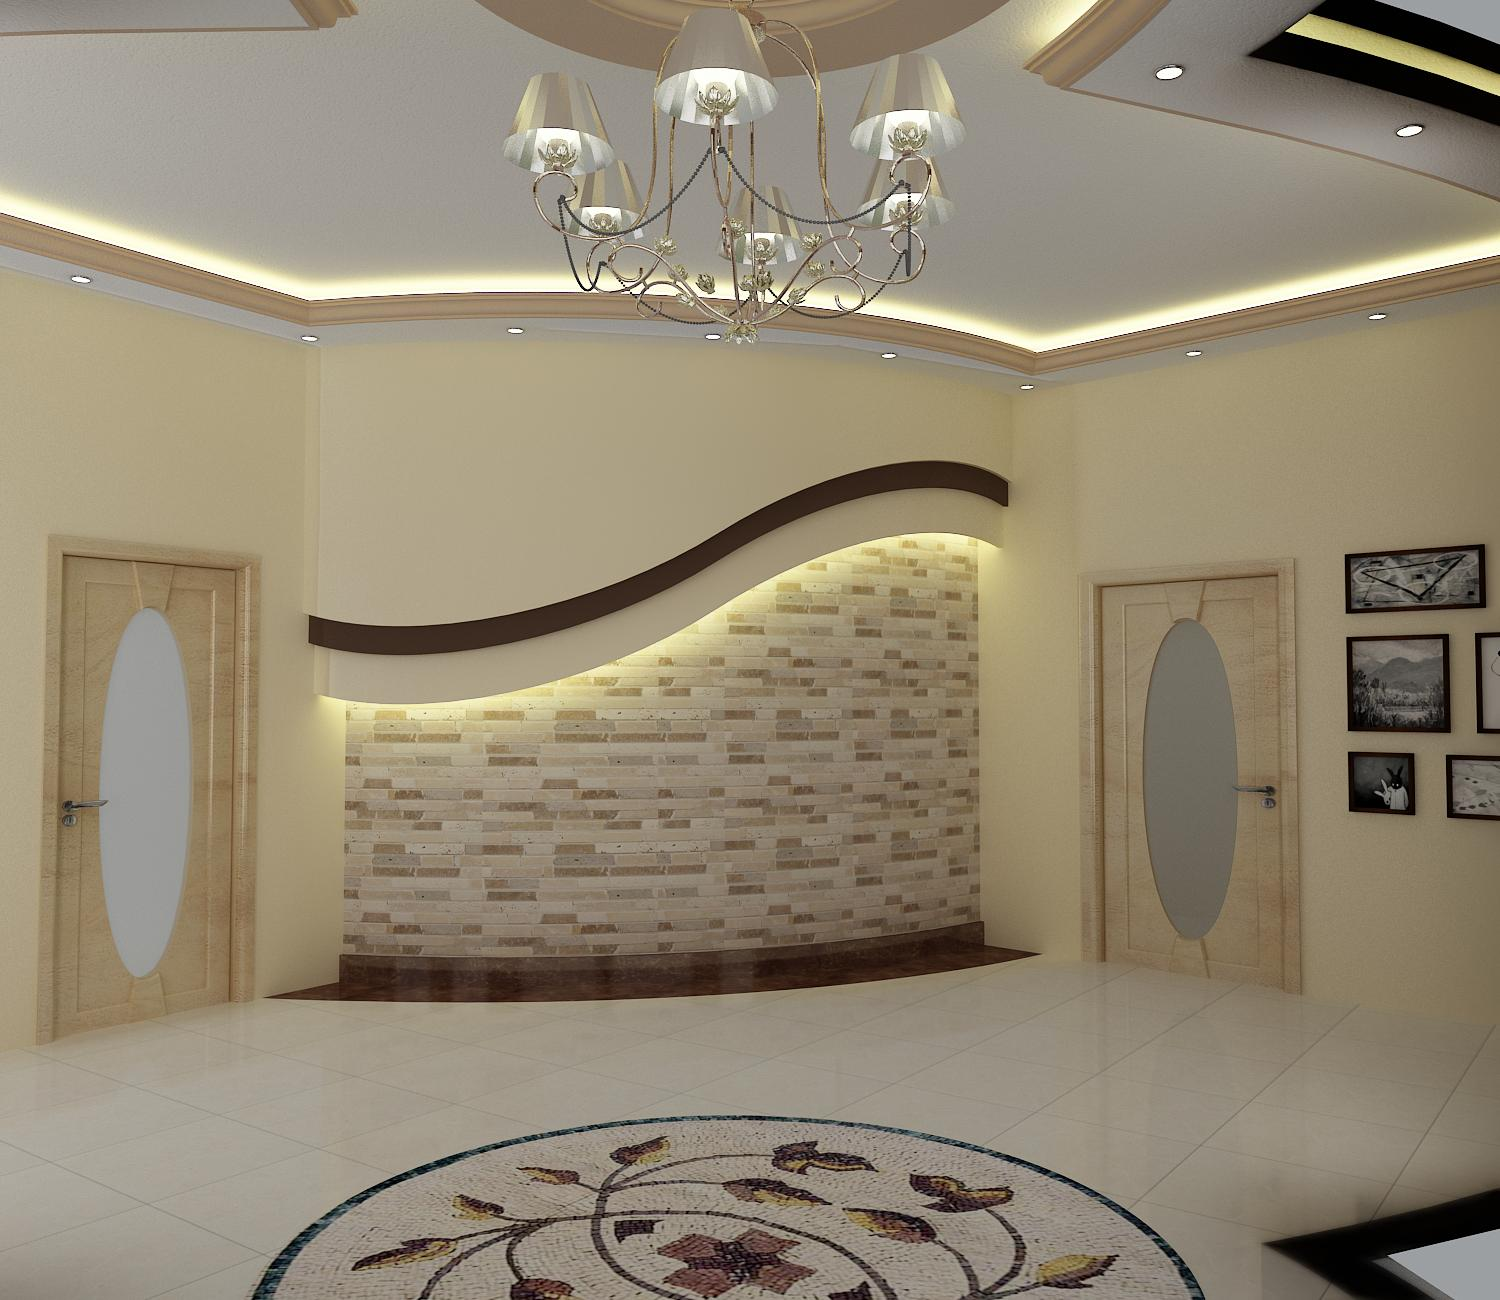 WASIM RIAZ: Interior Design For a Arabic Mujlis